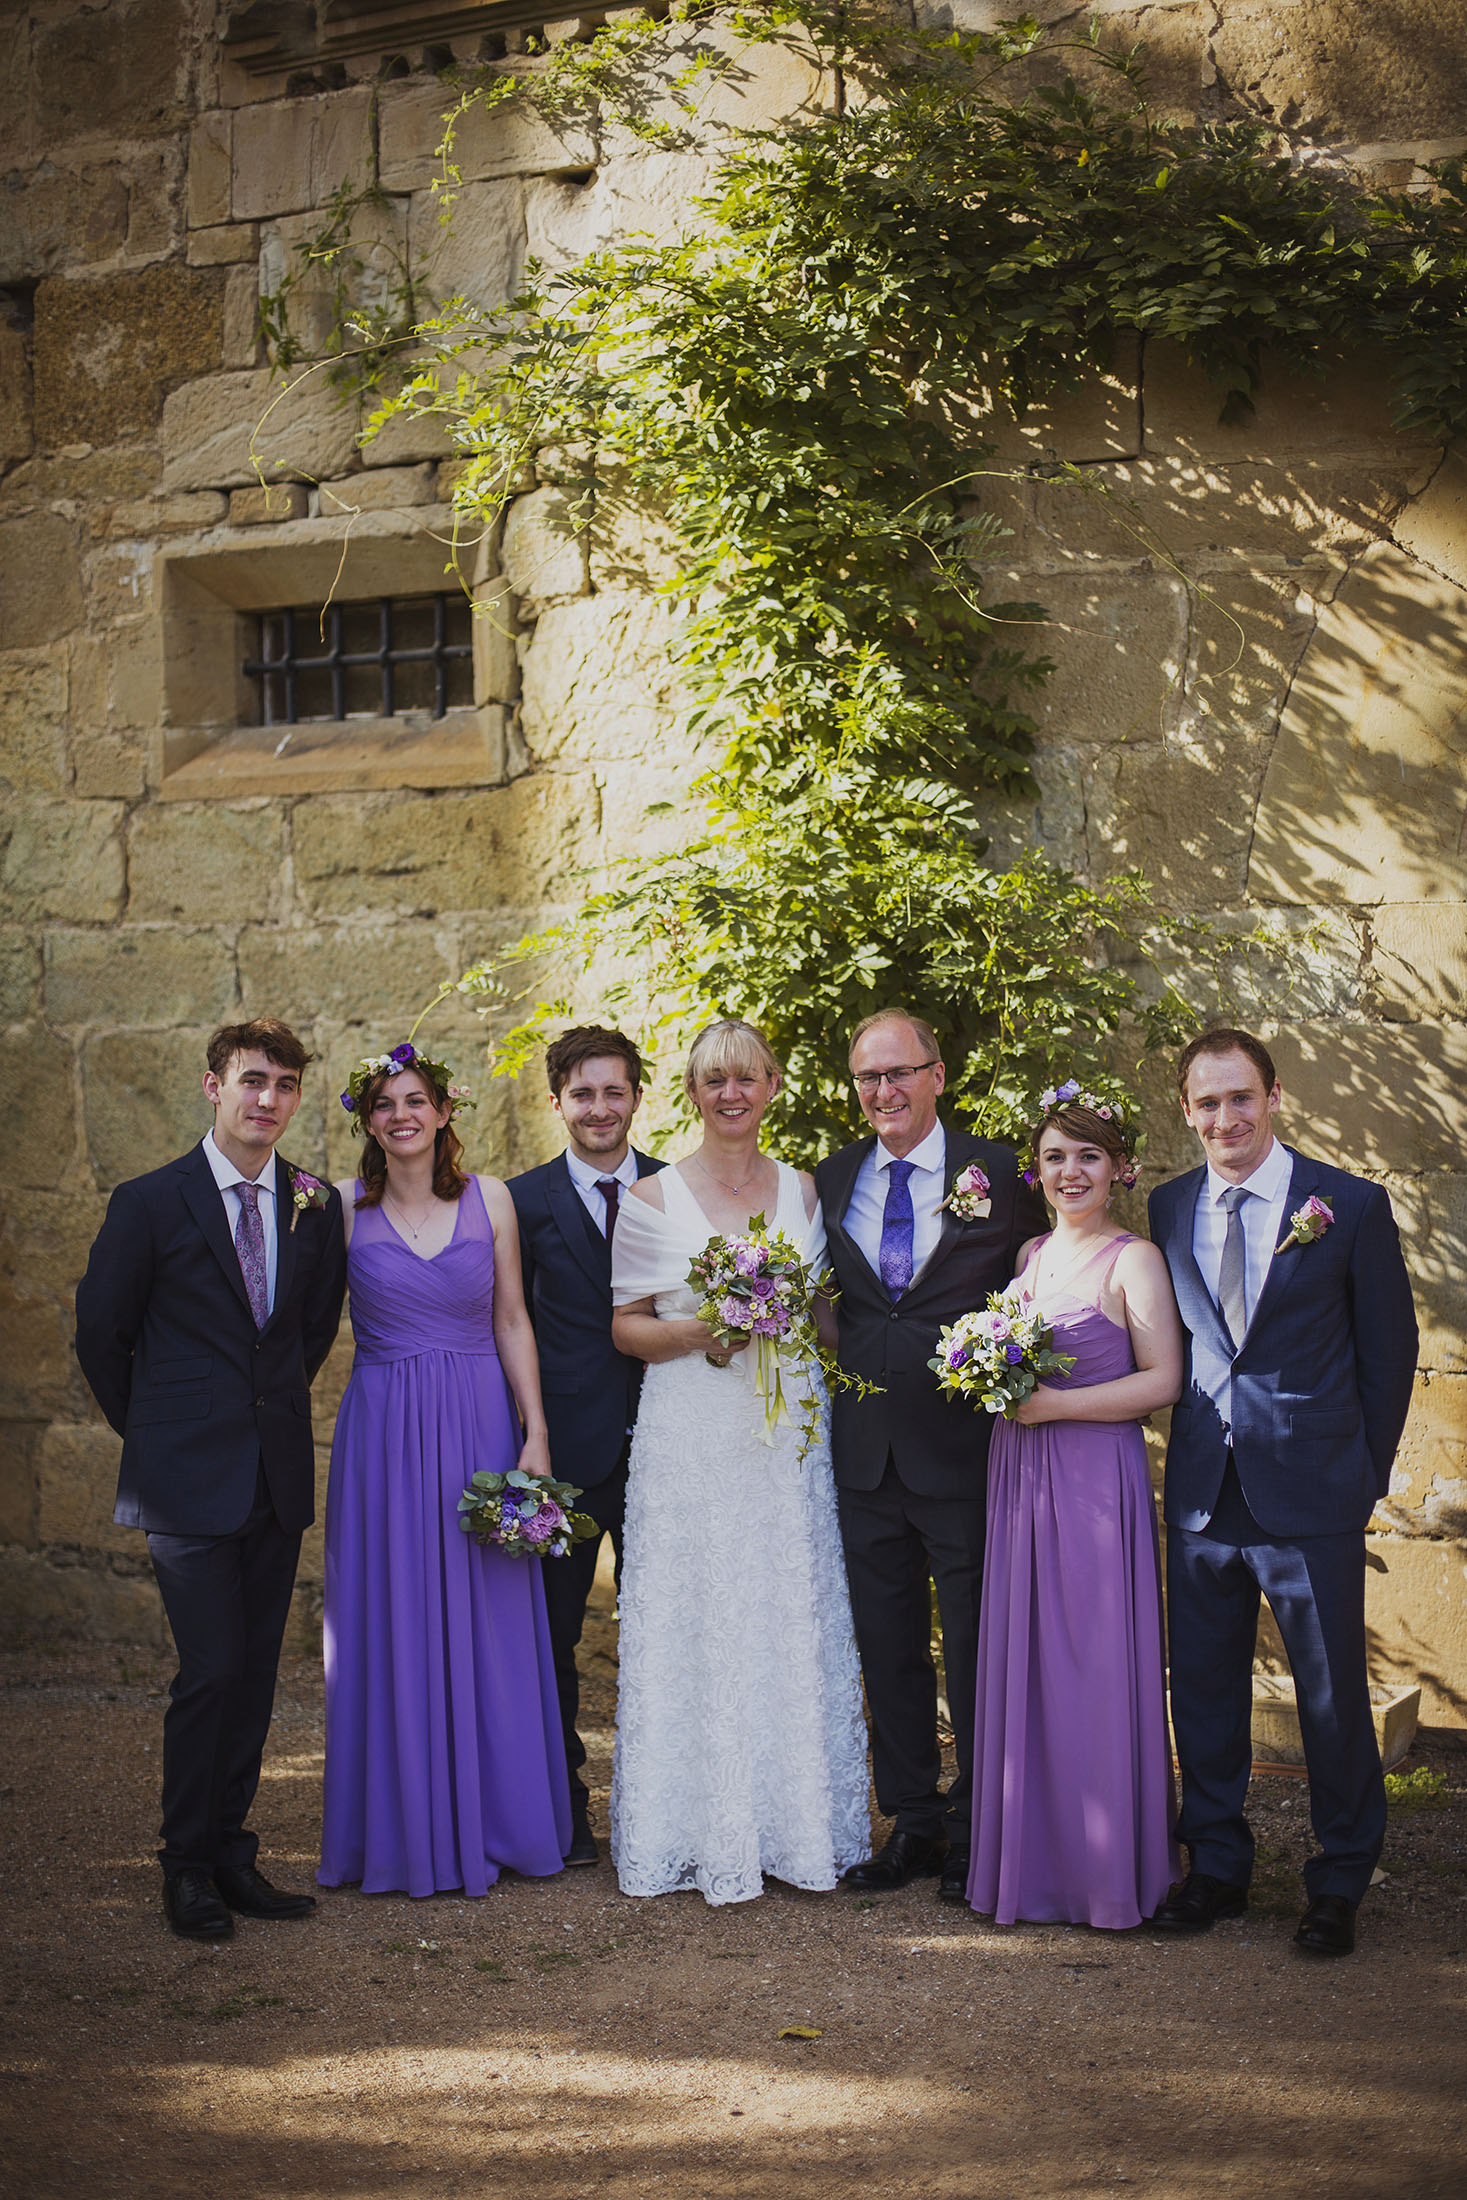 bride and groom with children at chateaux des ducs de joyeuses france destination wedding photography